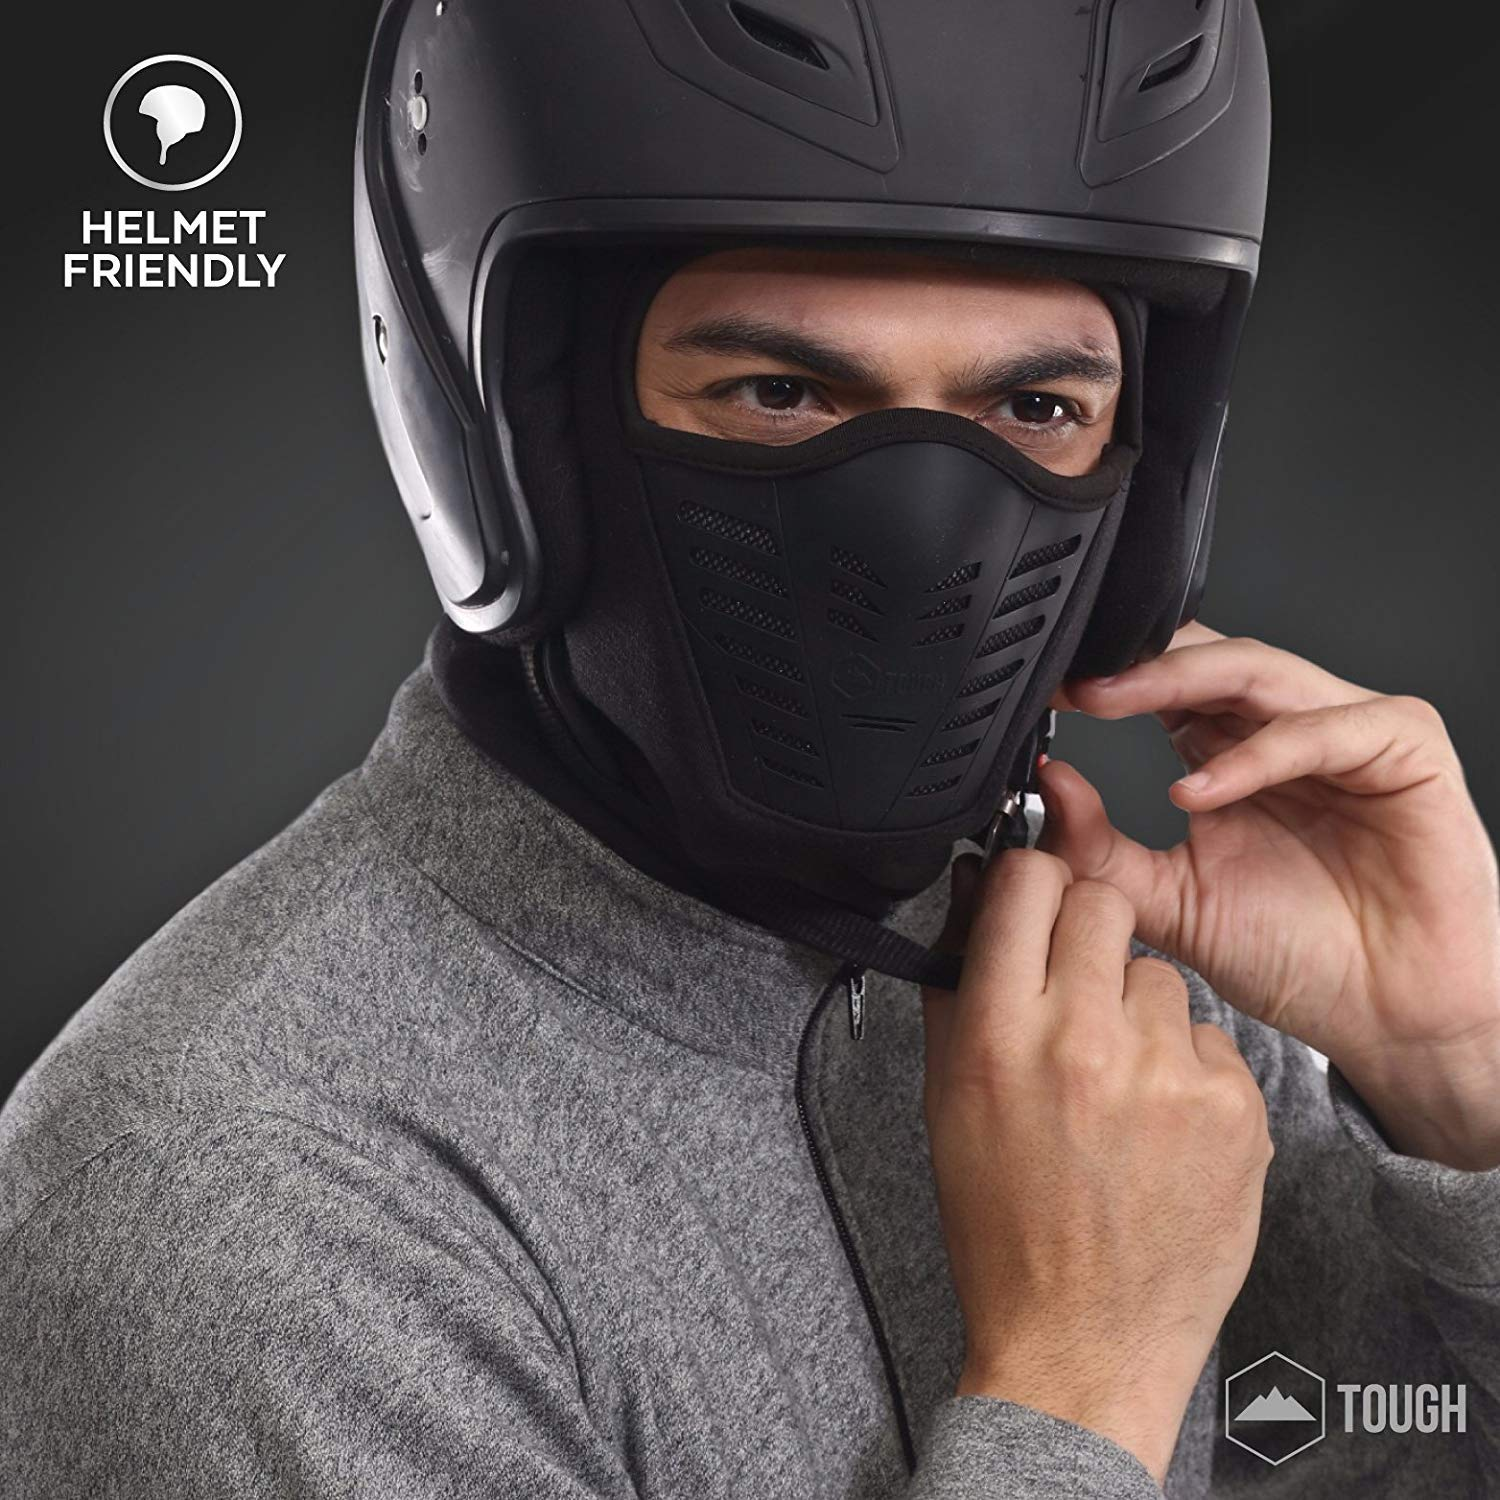 Ski /& Snowboard Winter Gear for Men /& Women Motorcycle Balaclava Fleece Hood /& Ski Mask with Air Mask Heavyweight Extreme Cold Weather Face Mask Ultimate Protection from the Elements